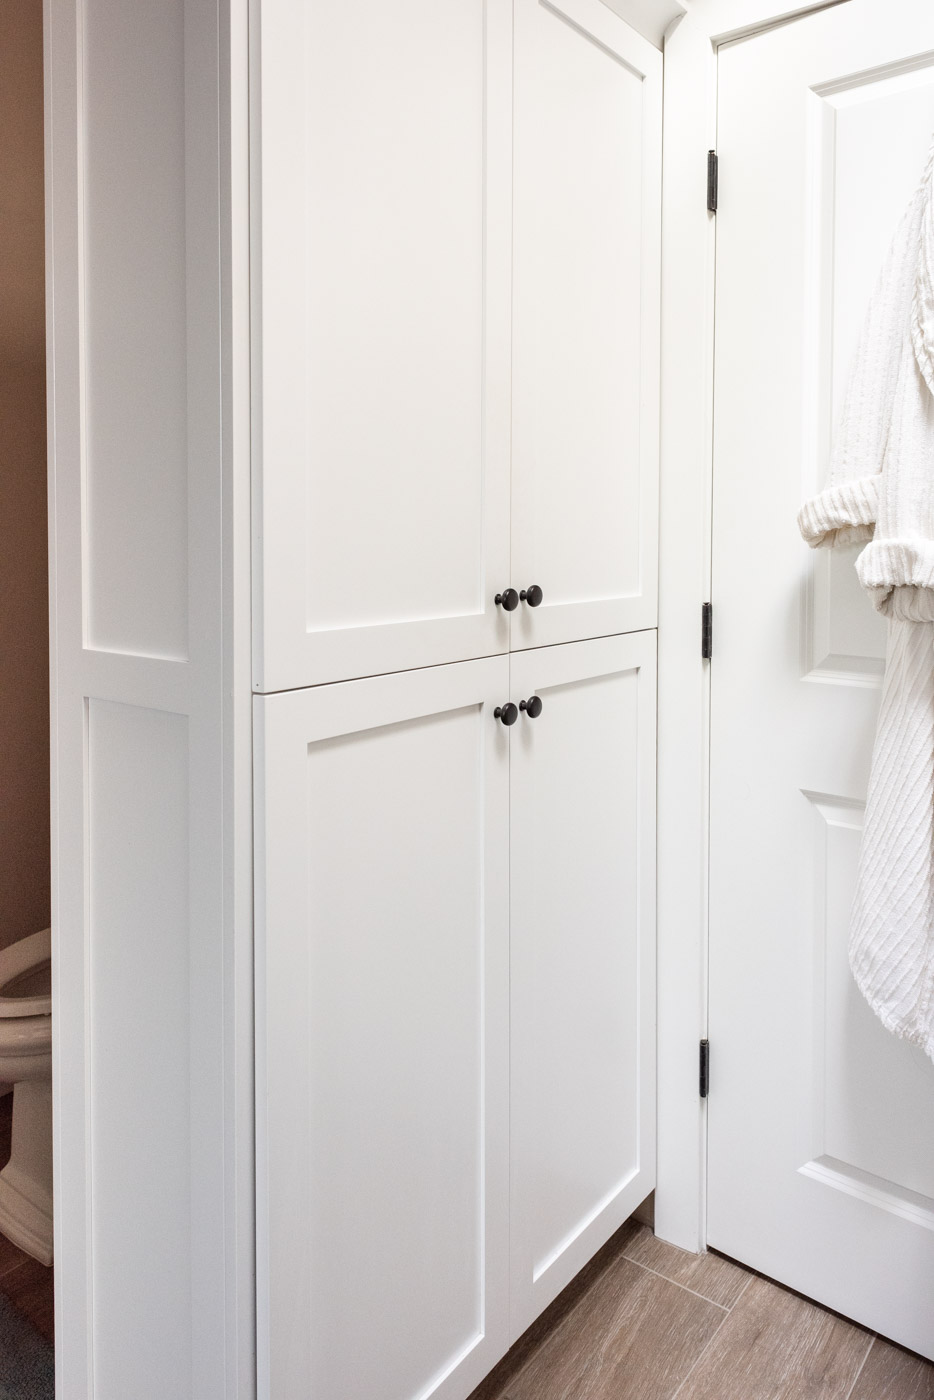 Coastal Craftsman home with custom white painted bathroom linen closet cabinets